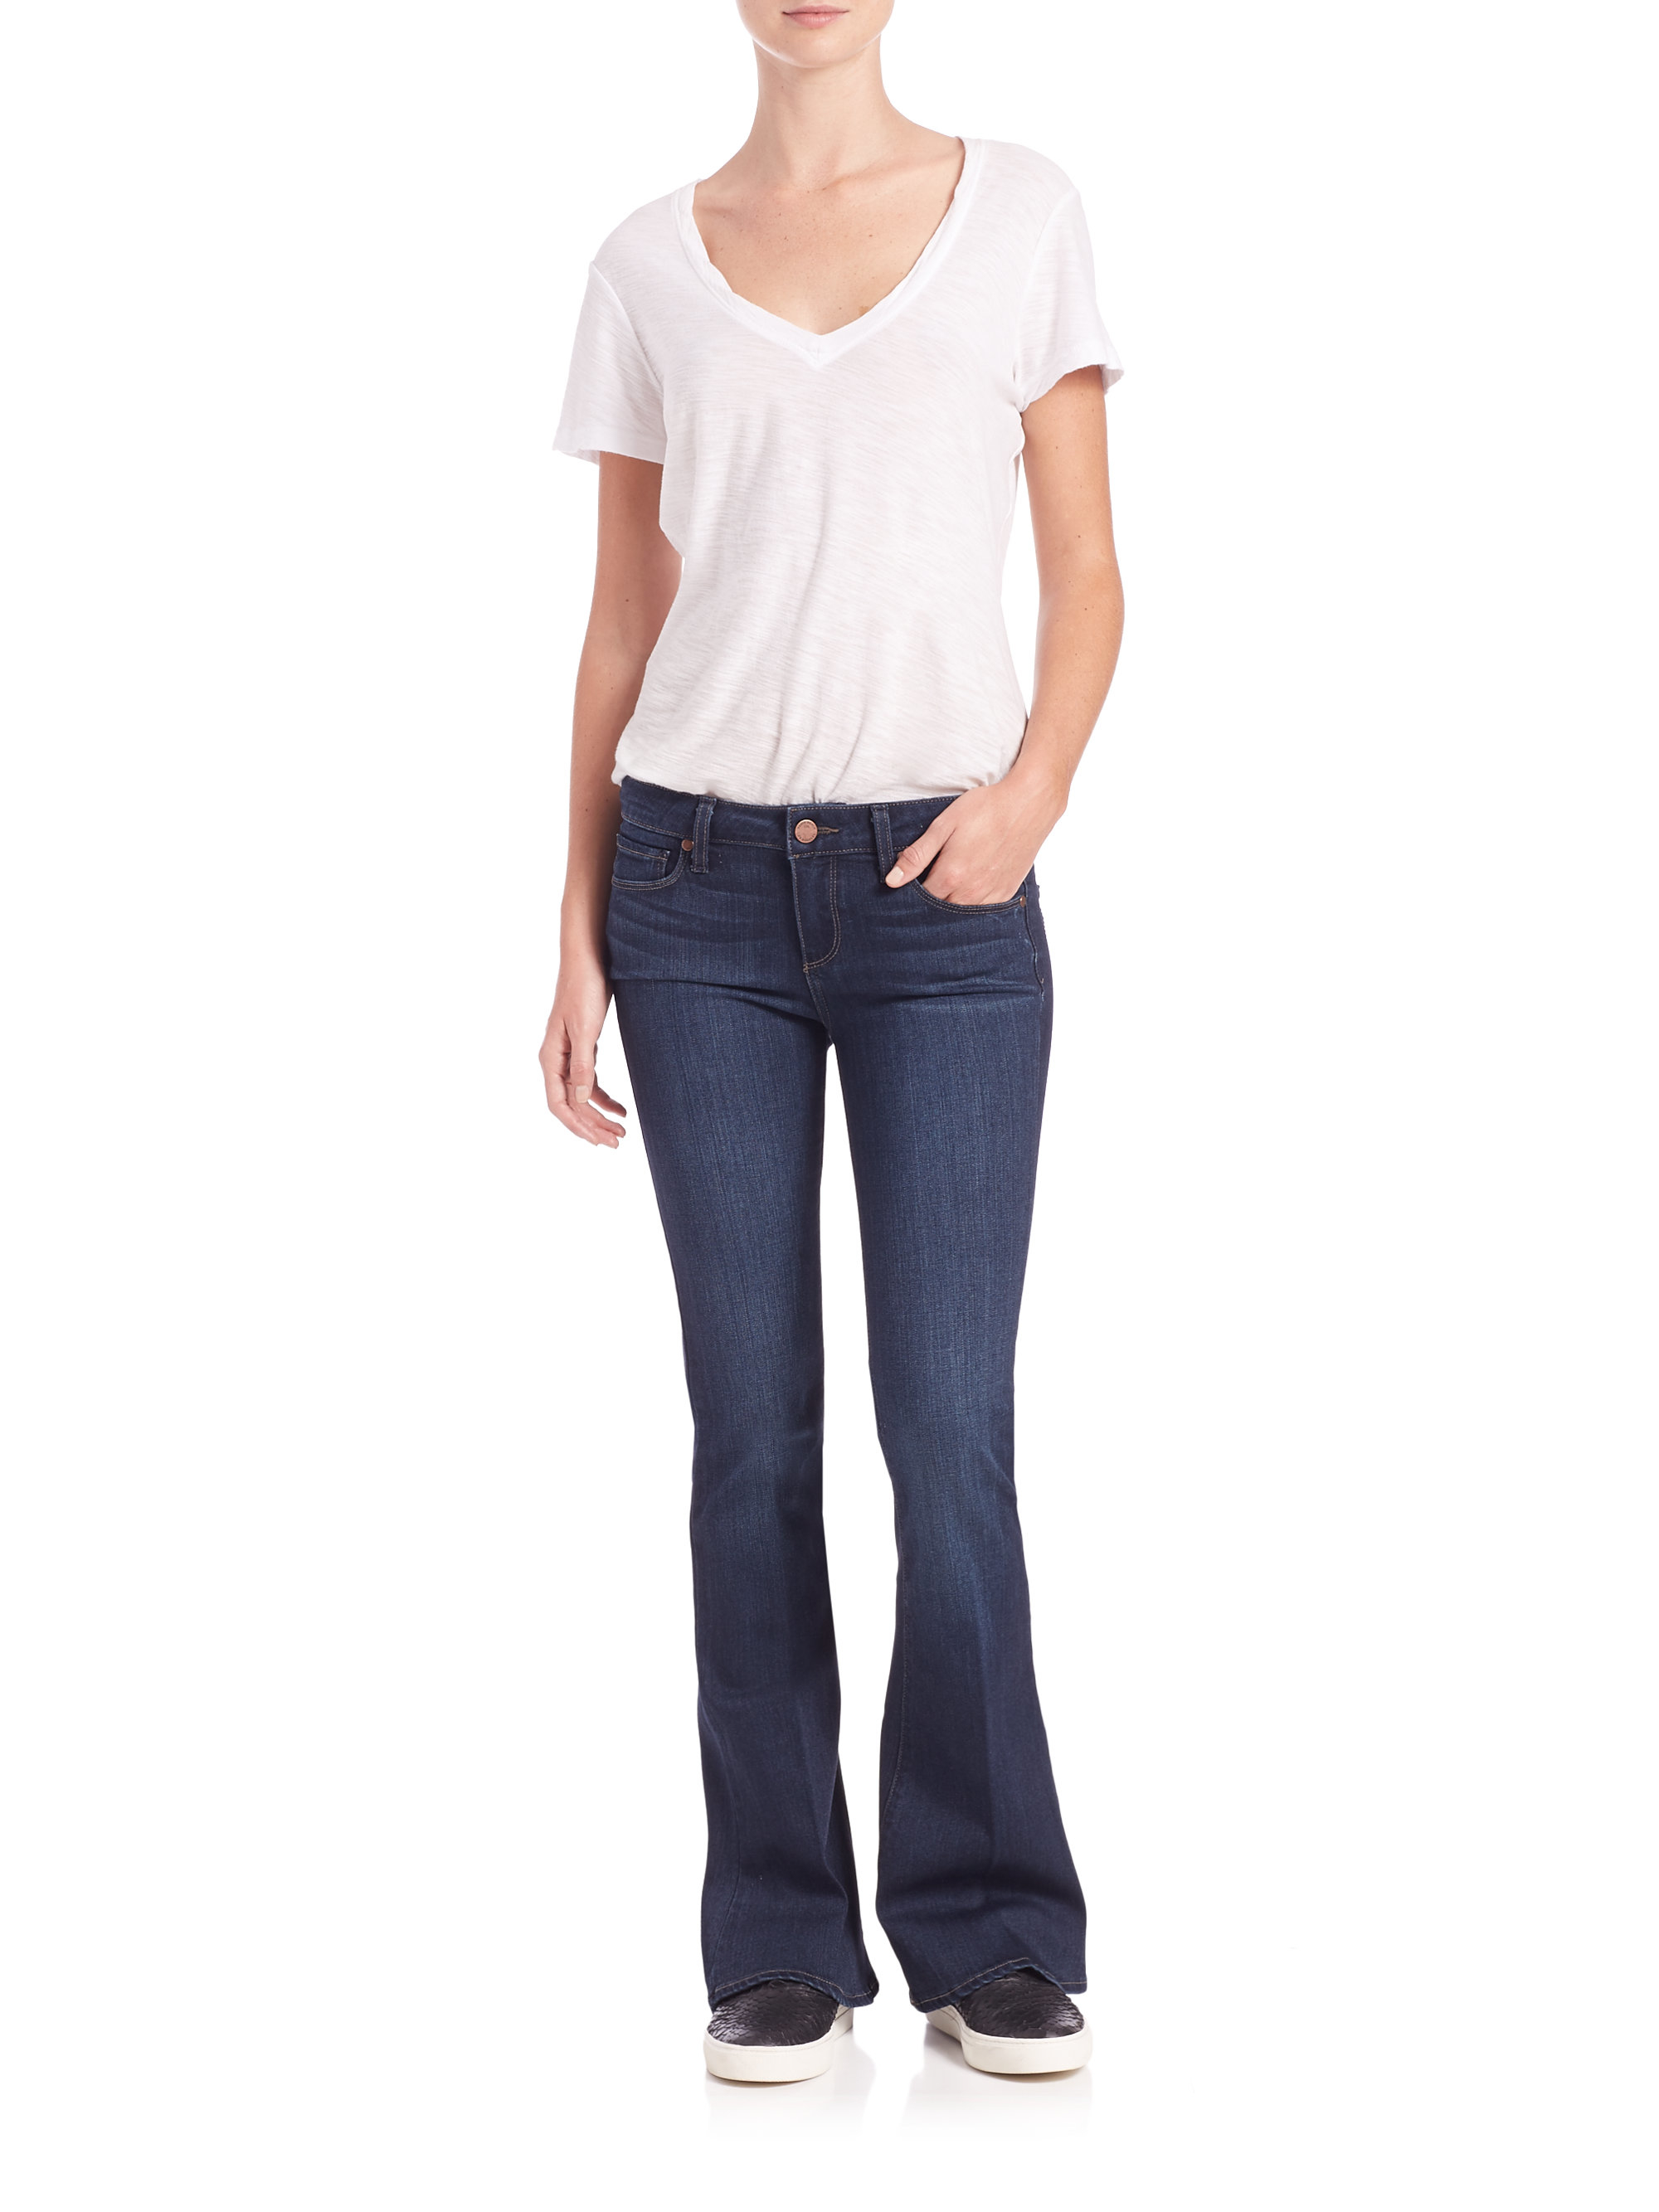 Lyst Paige Lou Lou Petite Flared Jeans In Blue